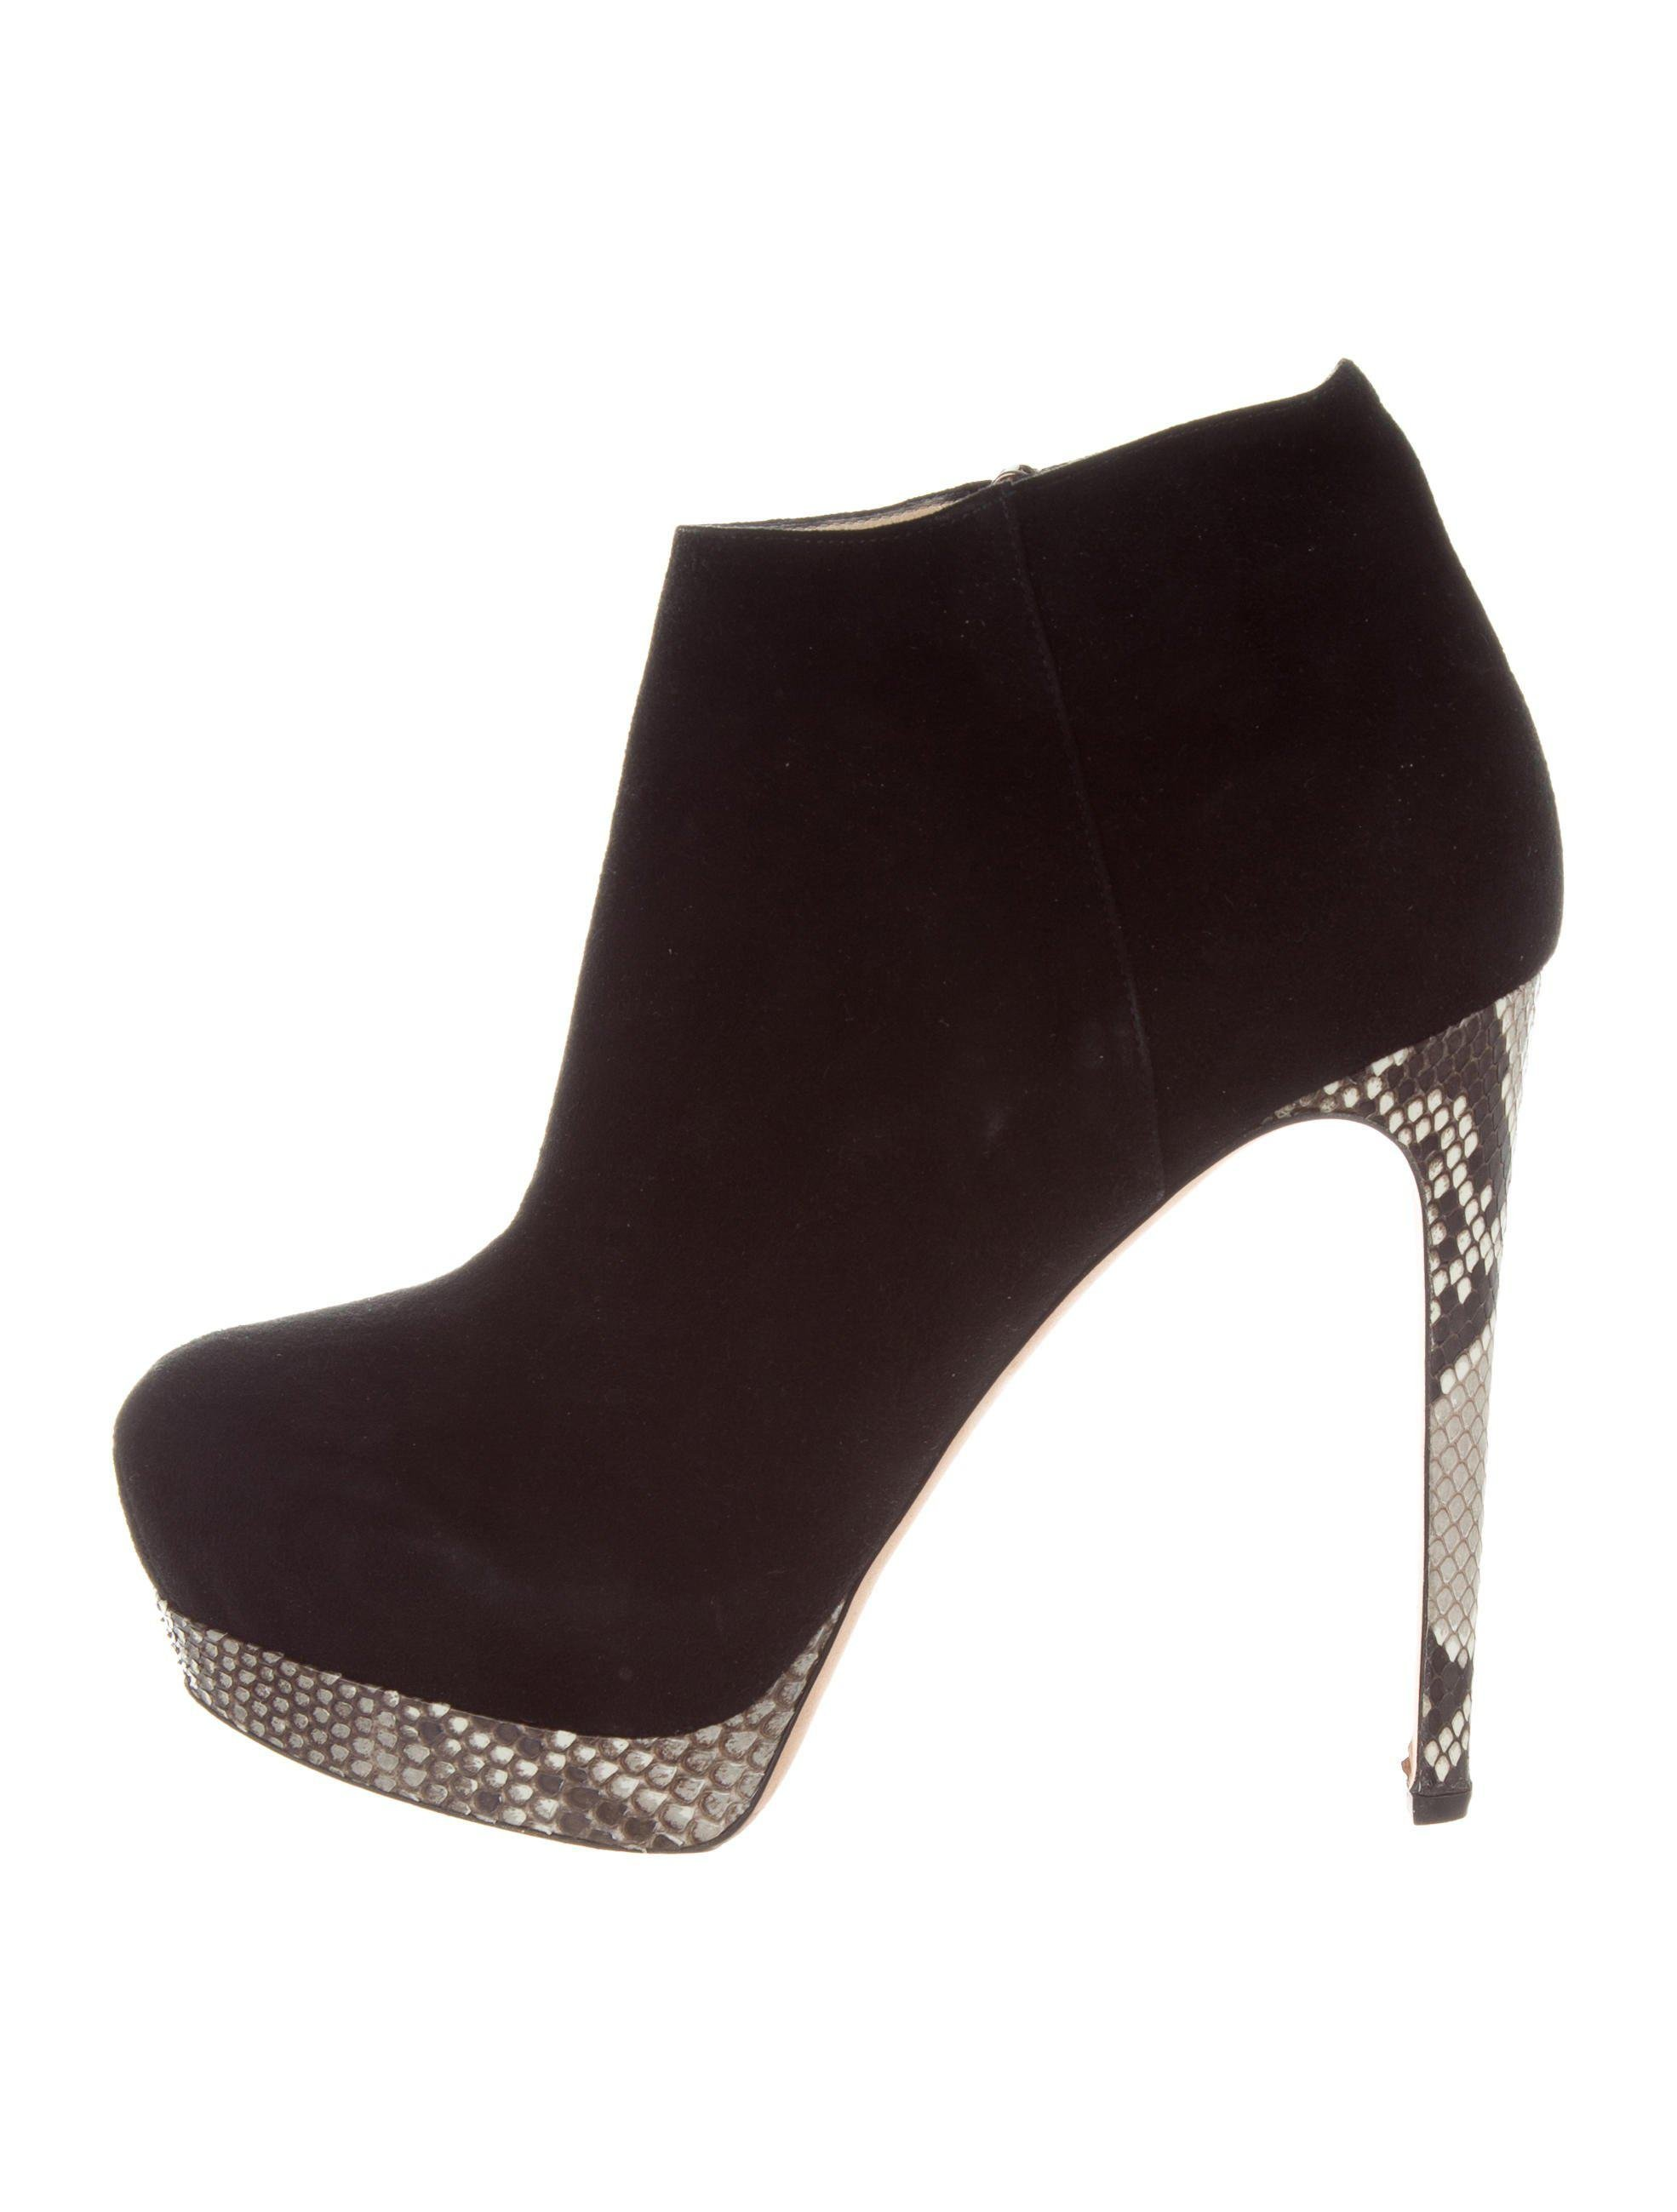 buy cheap real Alexandre Birman Snakeskin-Trimmed Cutout Ankle Boots outlet new sale 100% authentic SdjJa32DtL